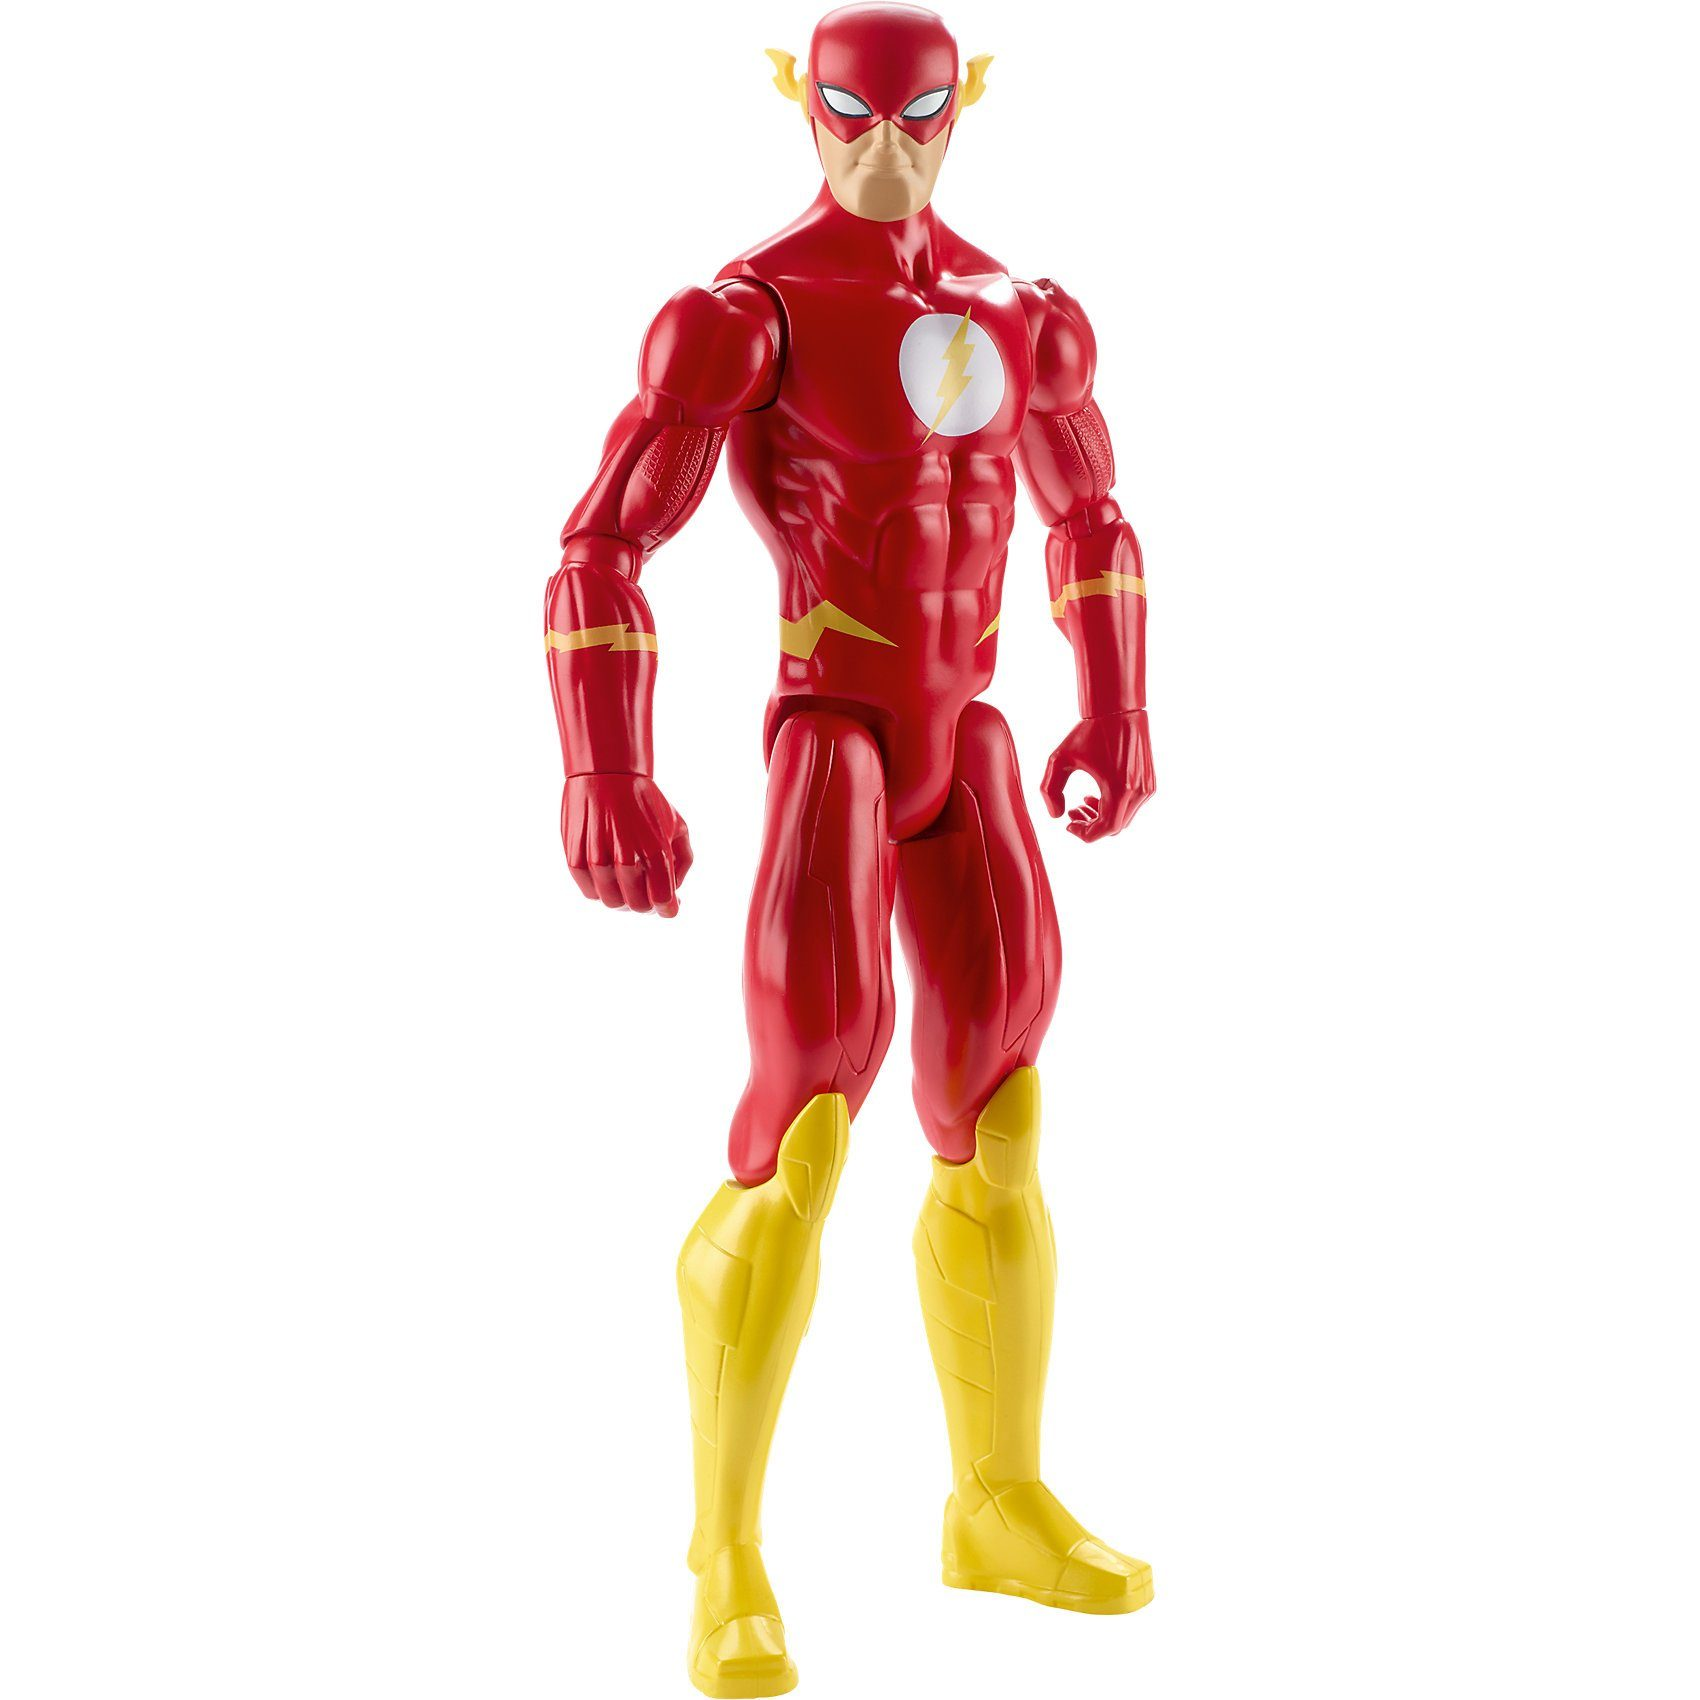 Mattel® DC Justice League Basis-Figur The Flash (30 cm)